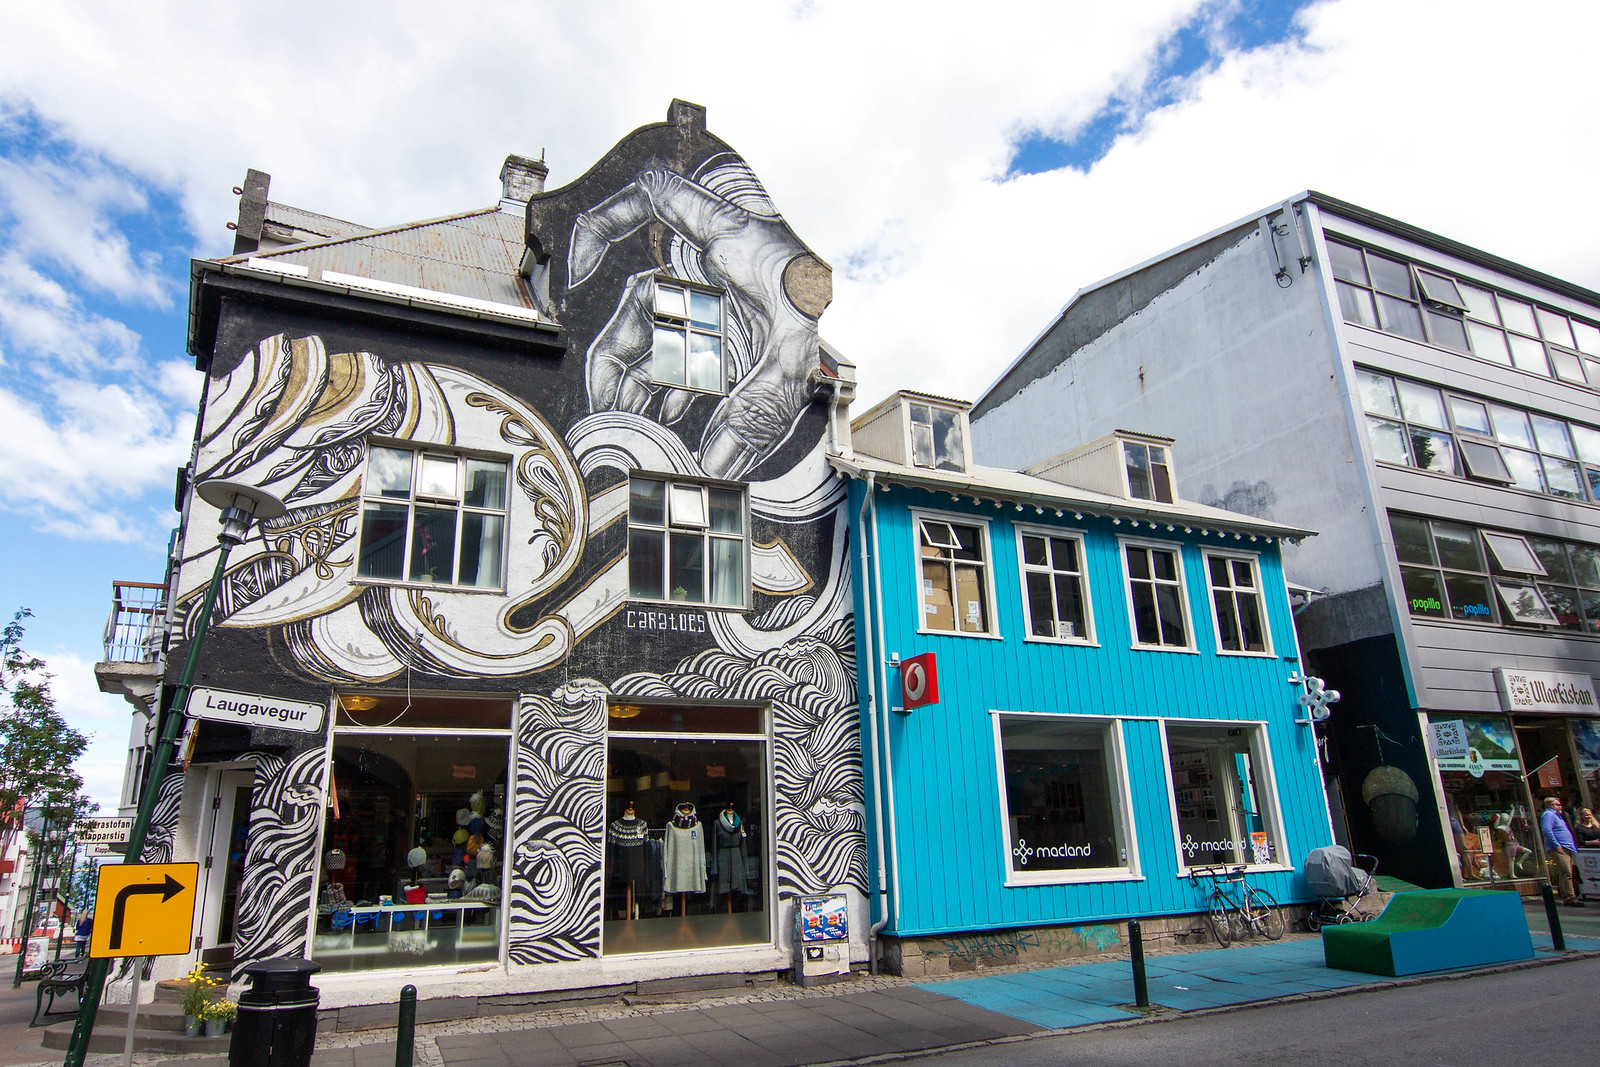 Reykjavík: Making the most of a weekend stopover in Iceland